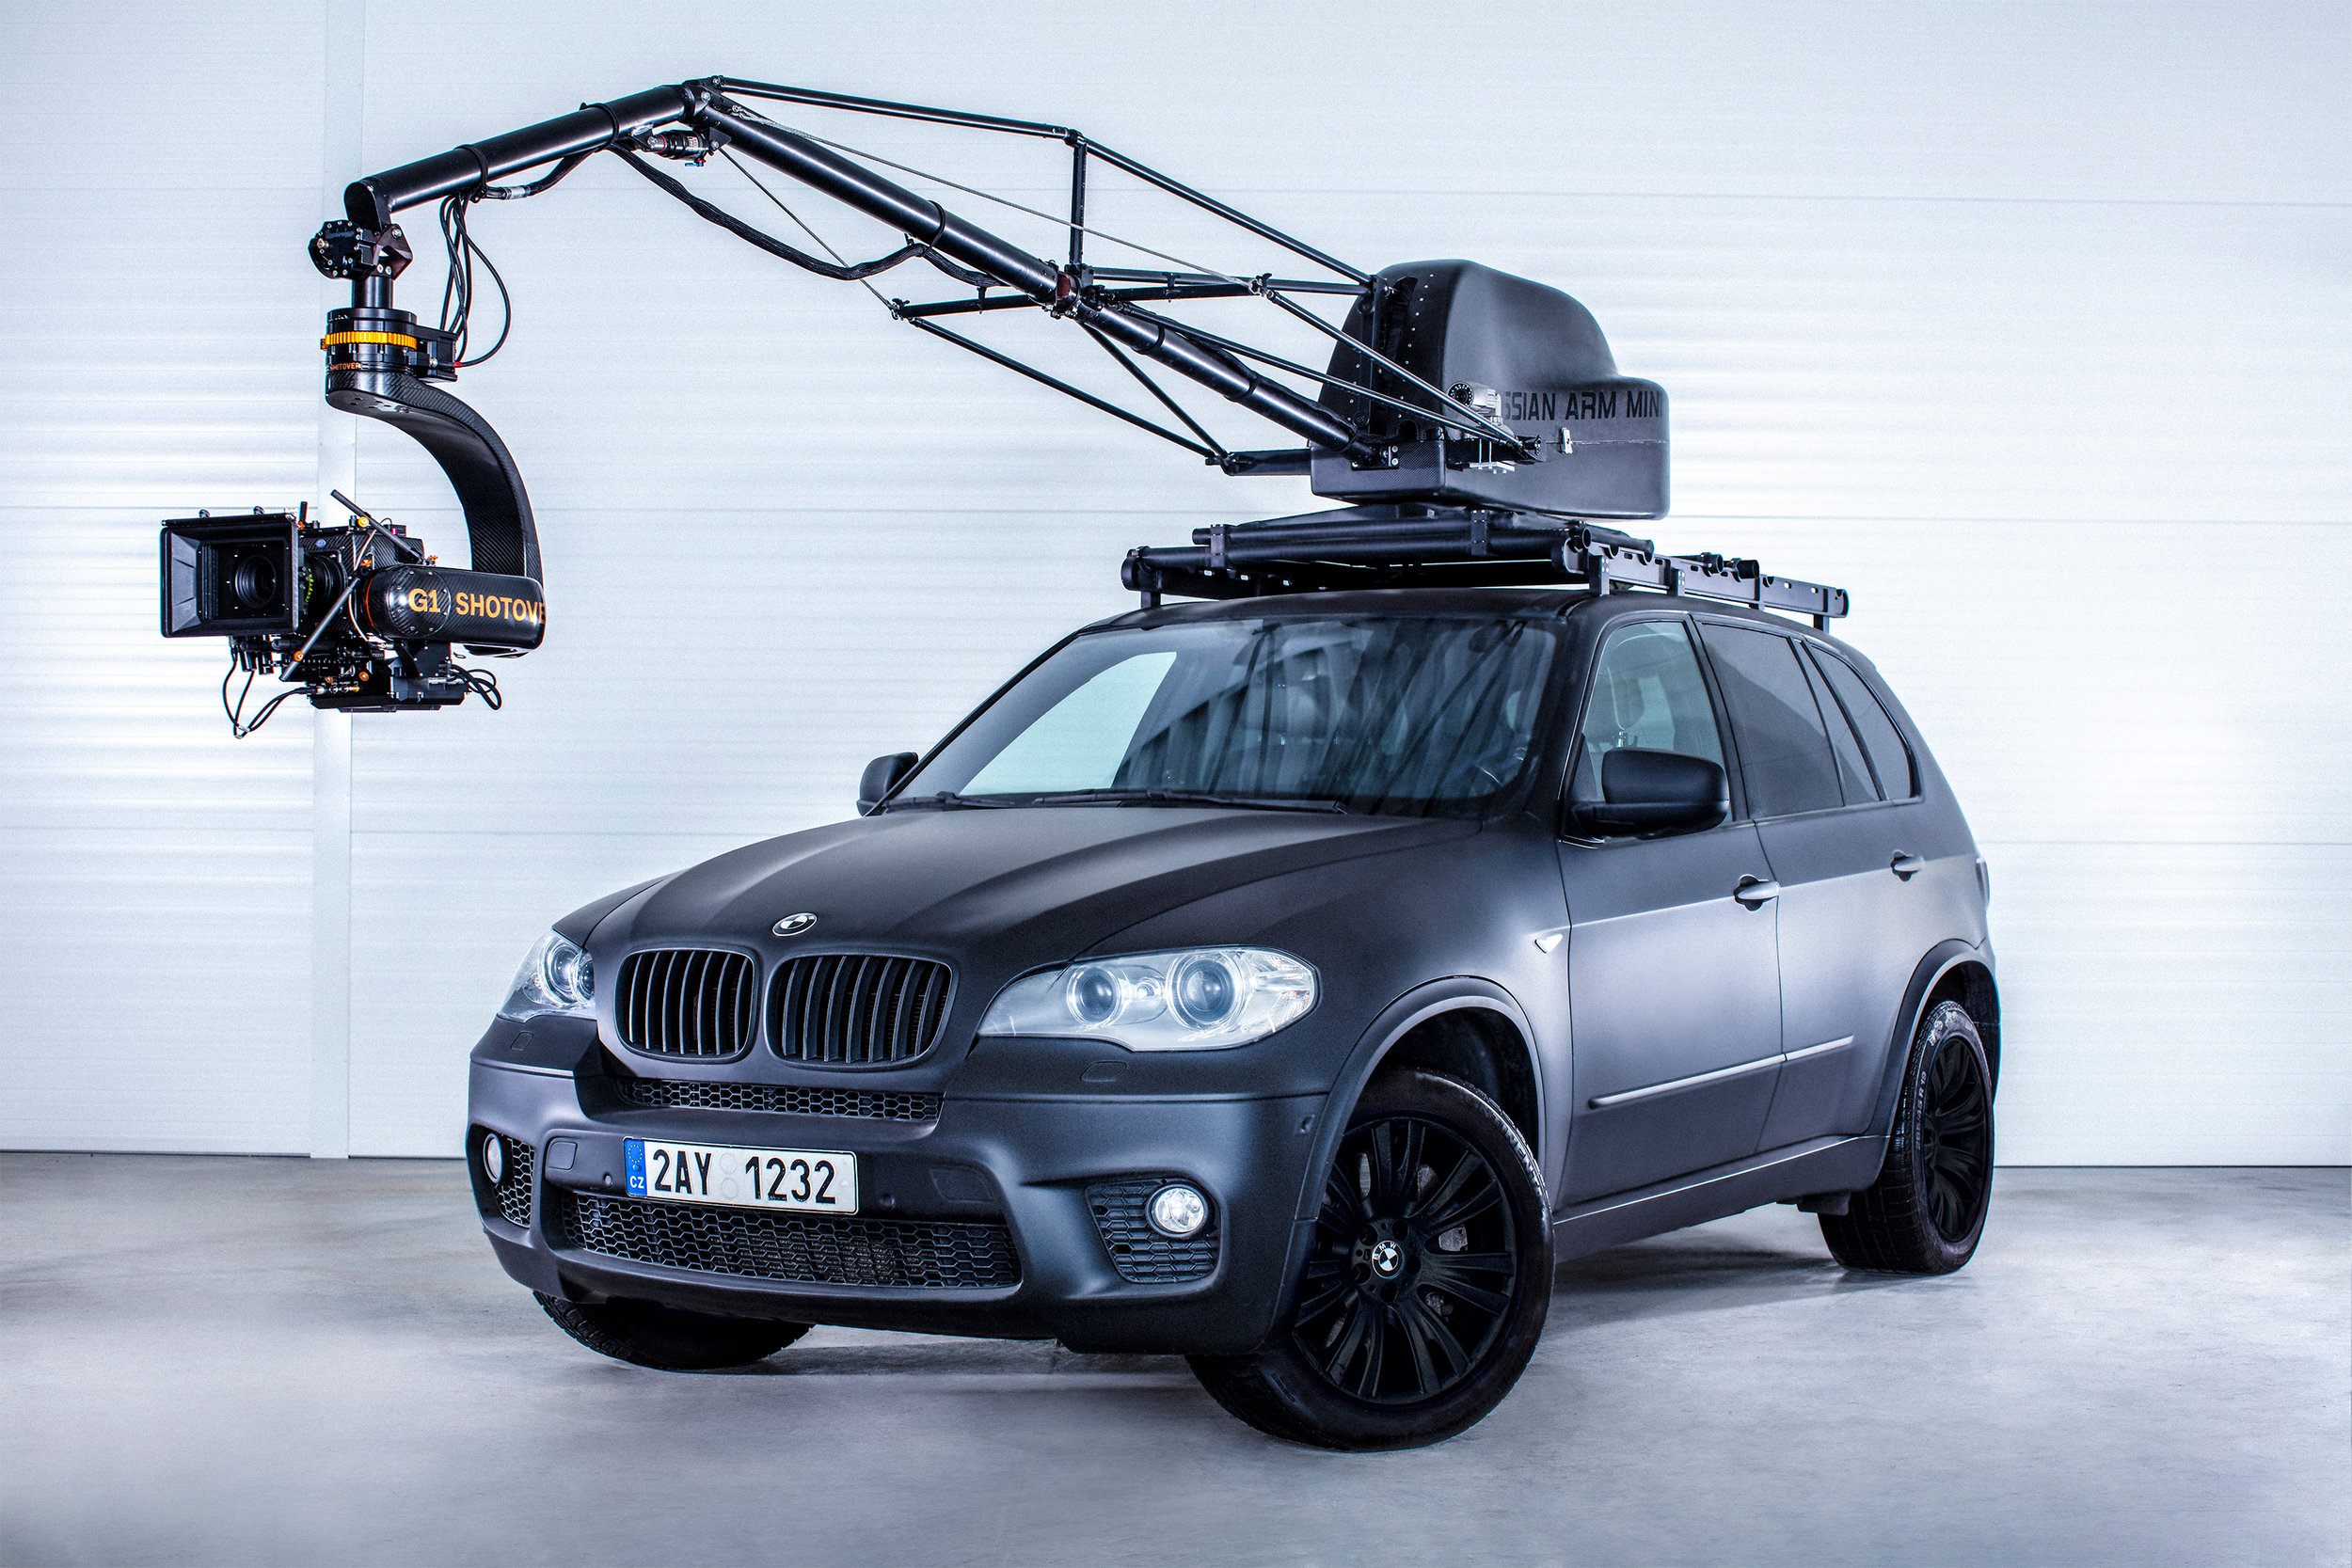 BMW X5M FILMOTECHNIC RUSSIAN ARM -